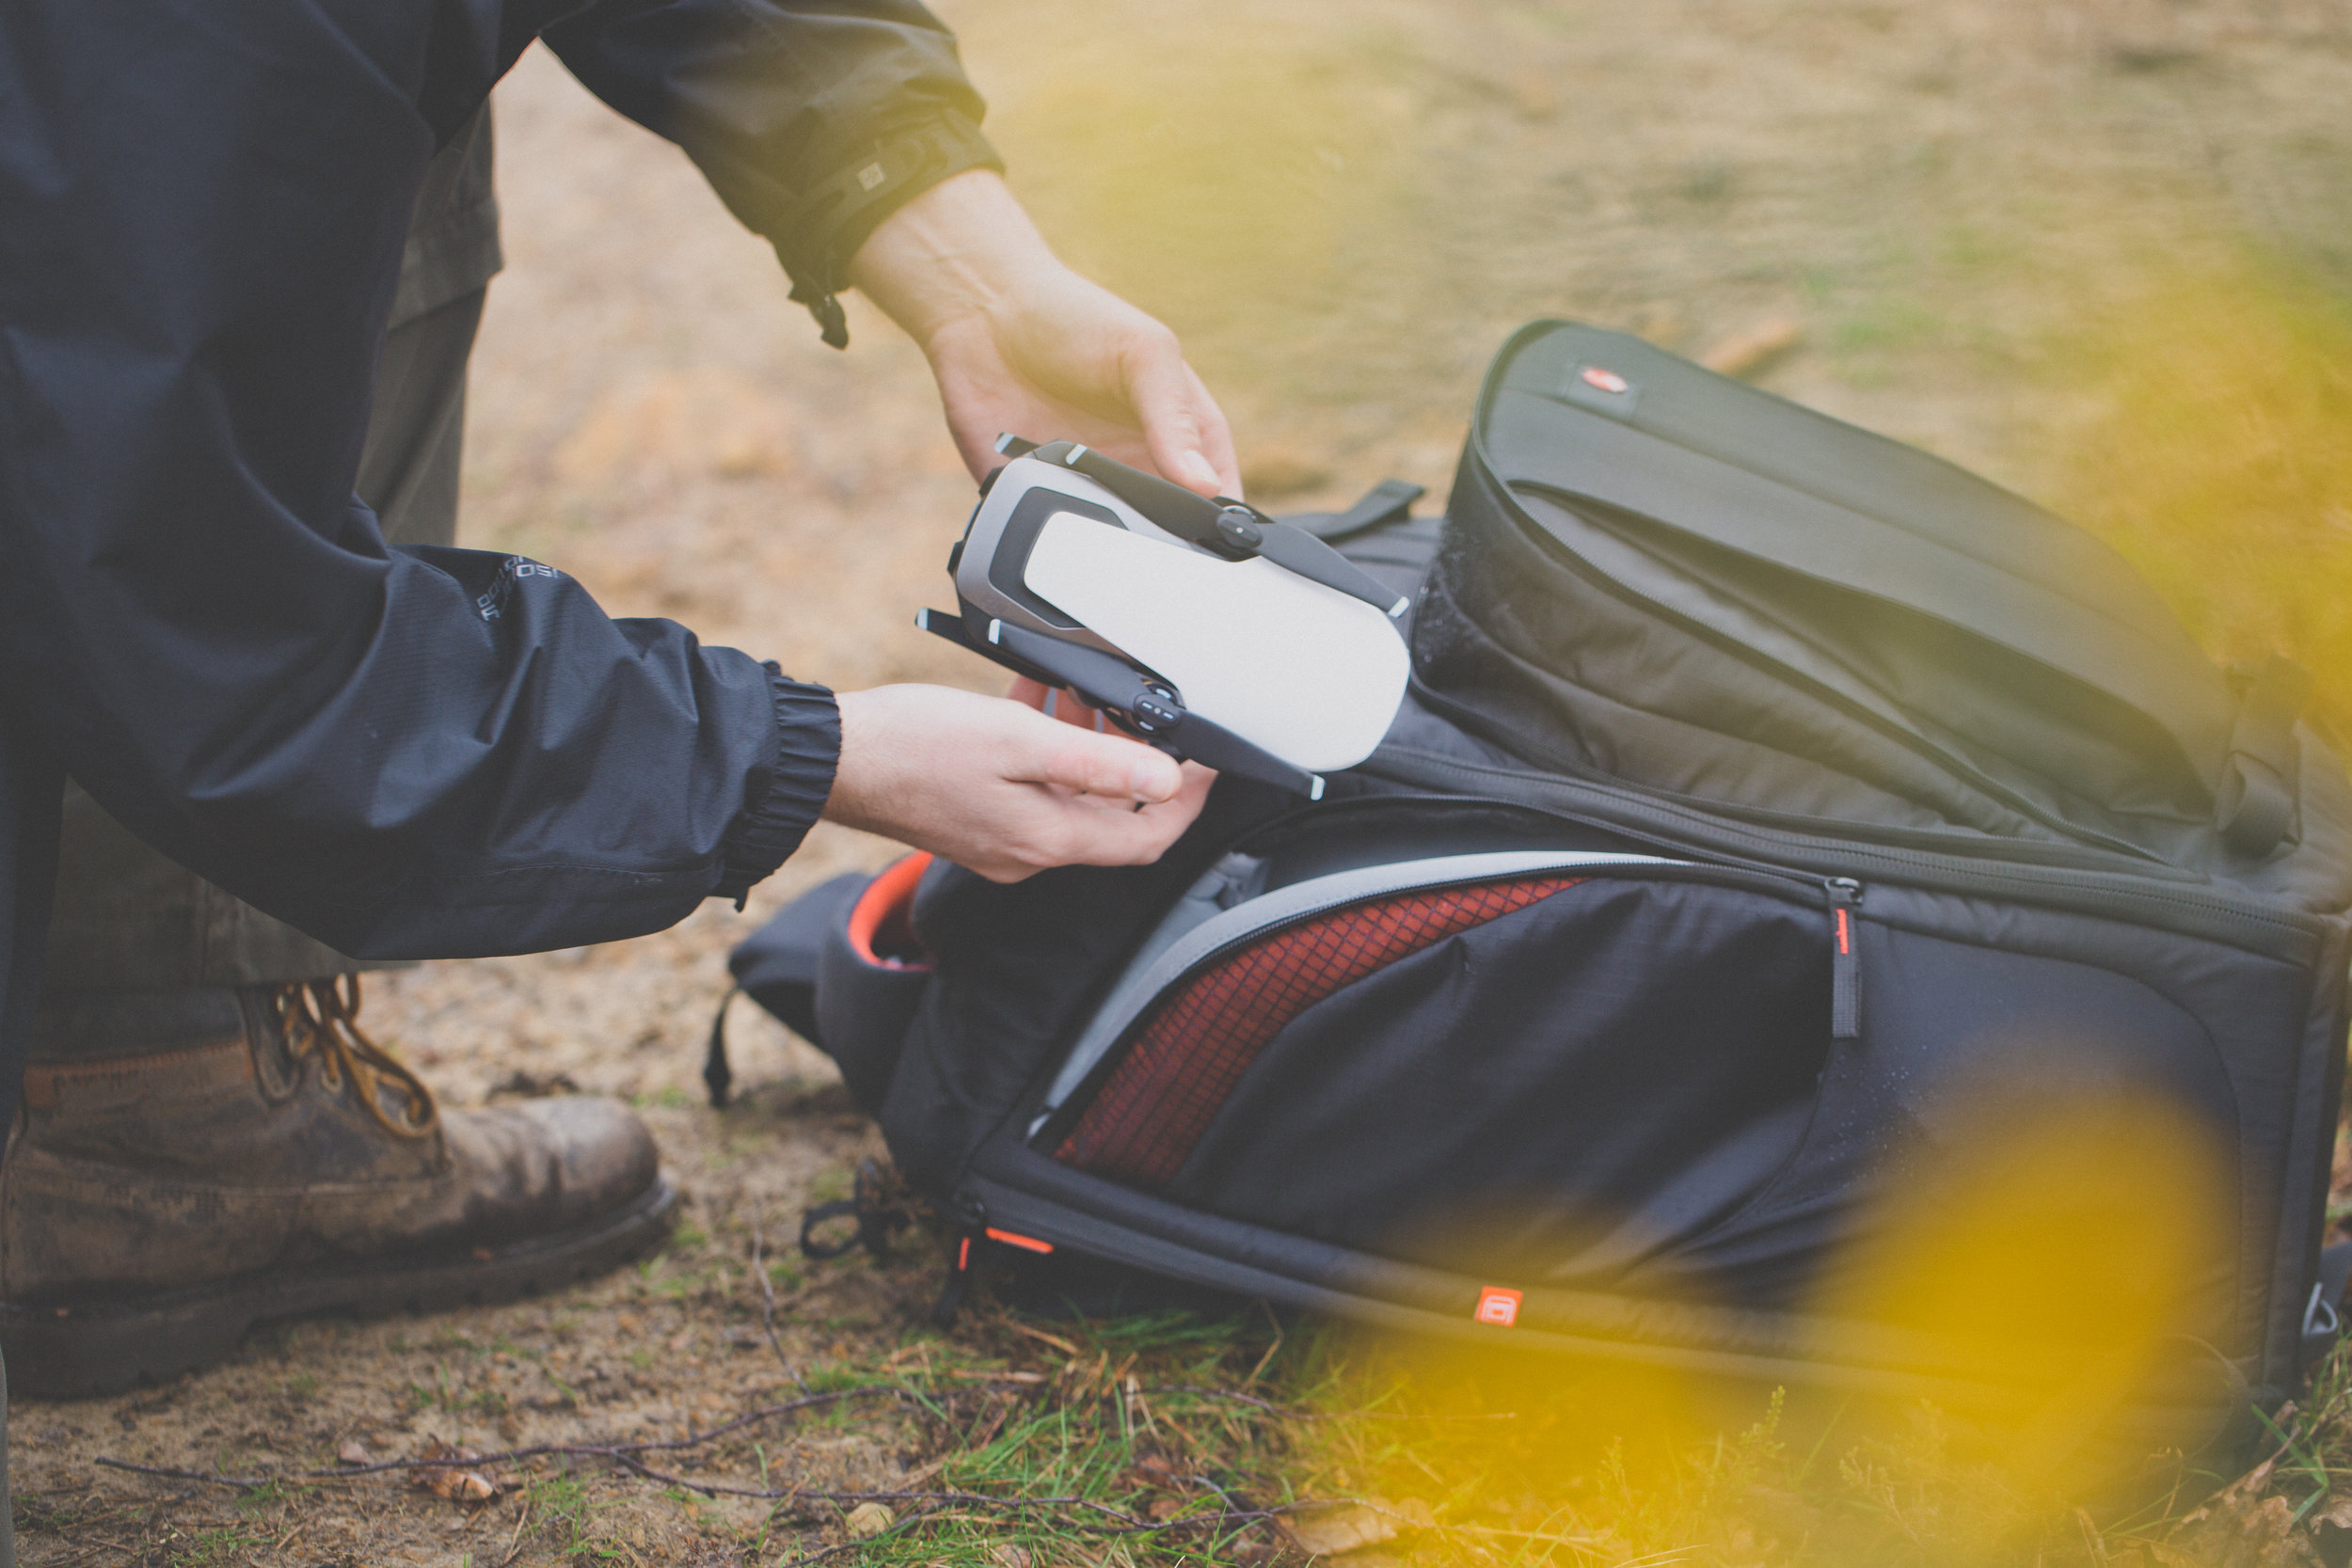 The DJI Mavic Air is a fantastic addition to the kit bag (Manfrotto Pro Light Cinematic Expand), and fits into the bag very well!